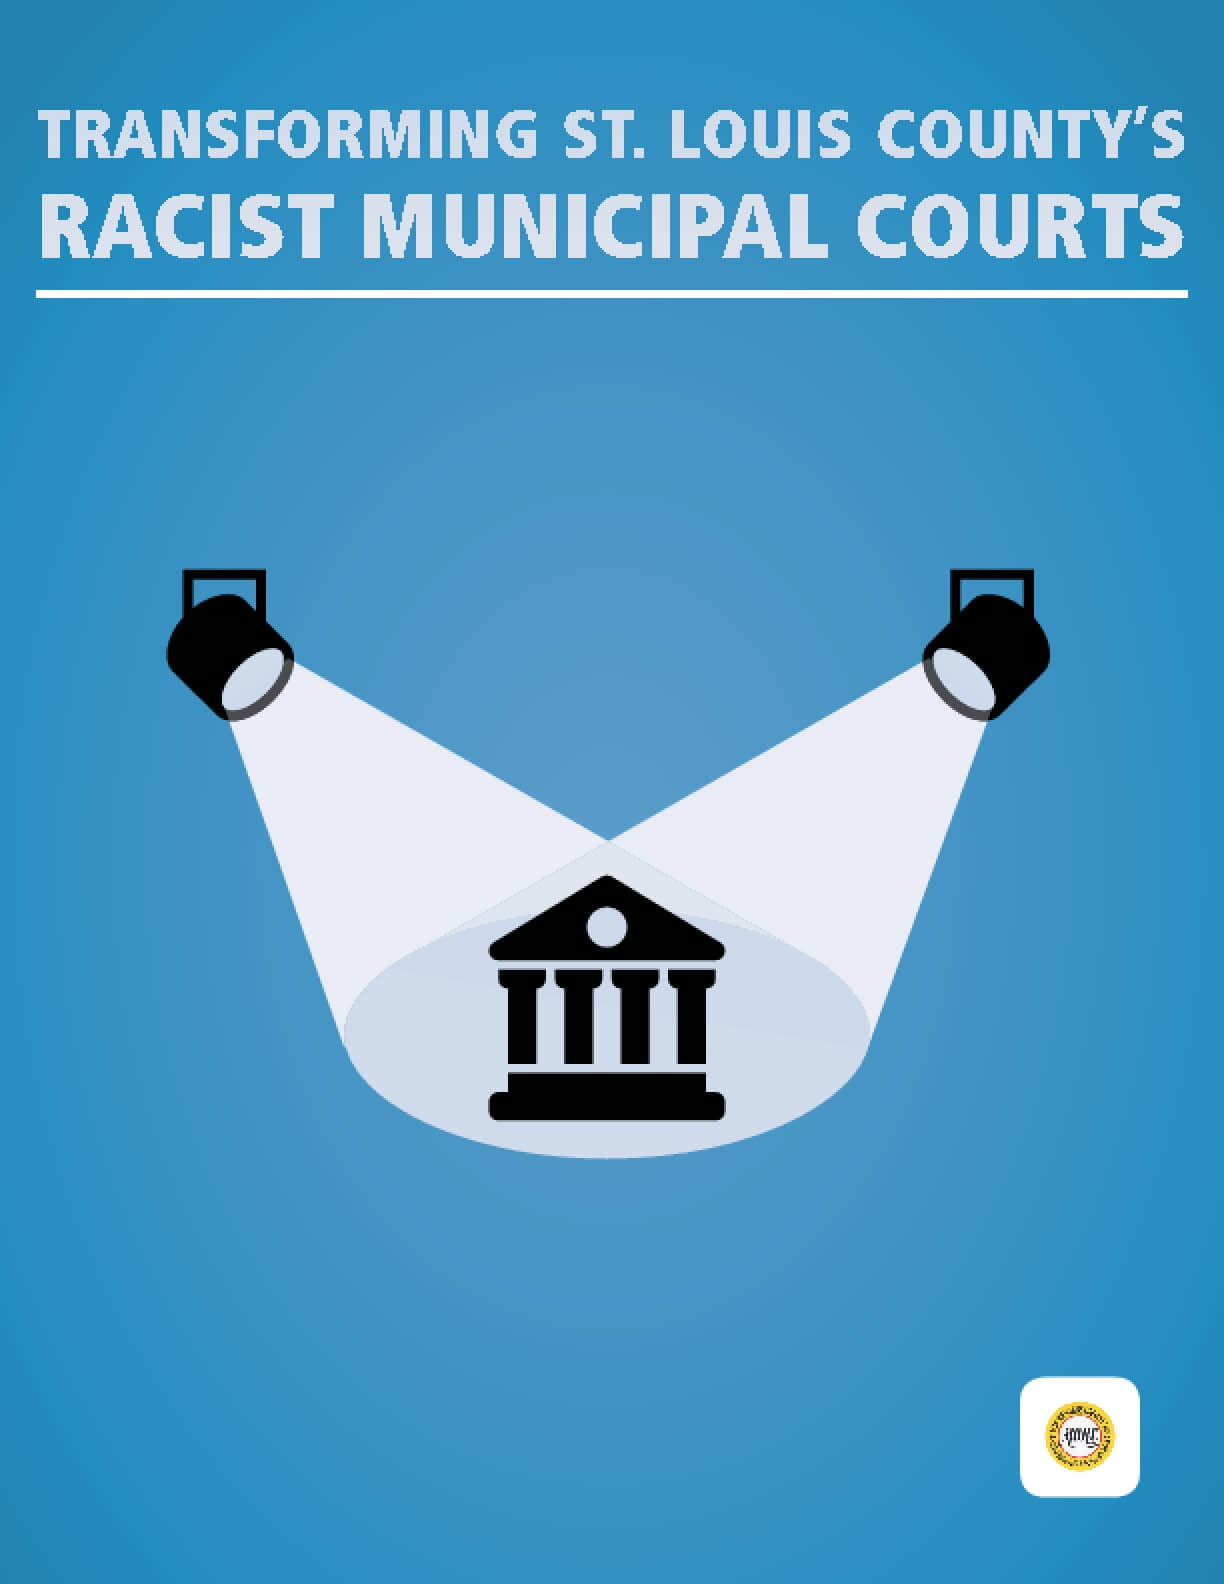 Transforming St. Louis County's Racist Municipal Courts